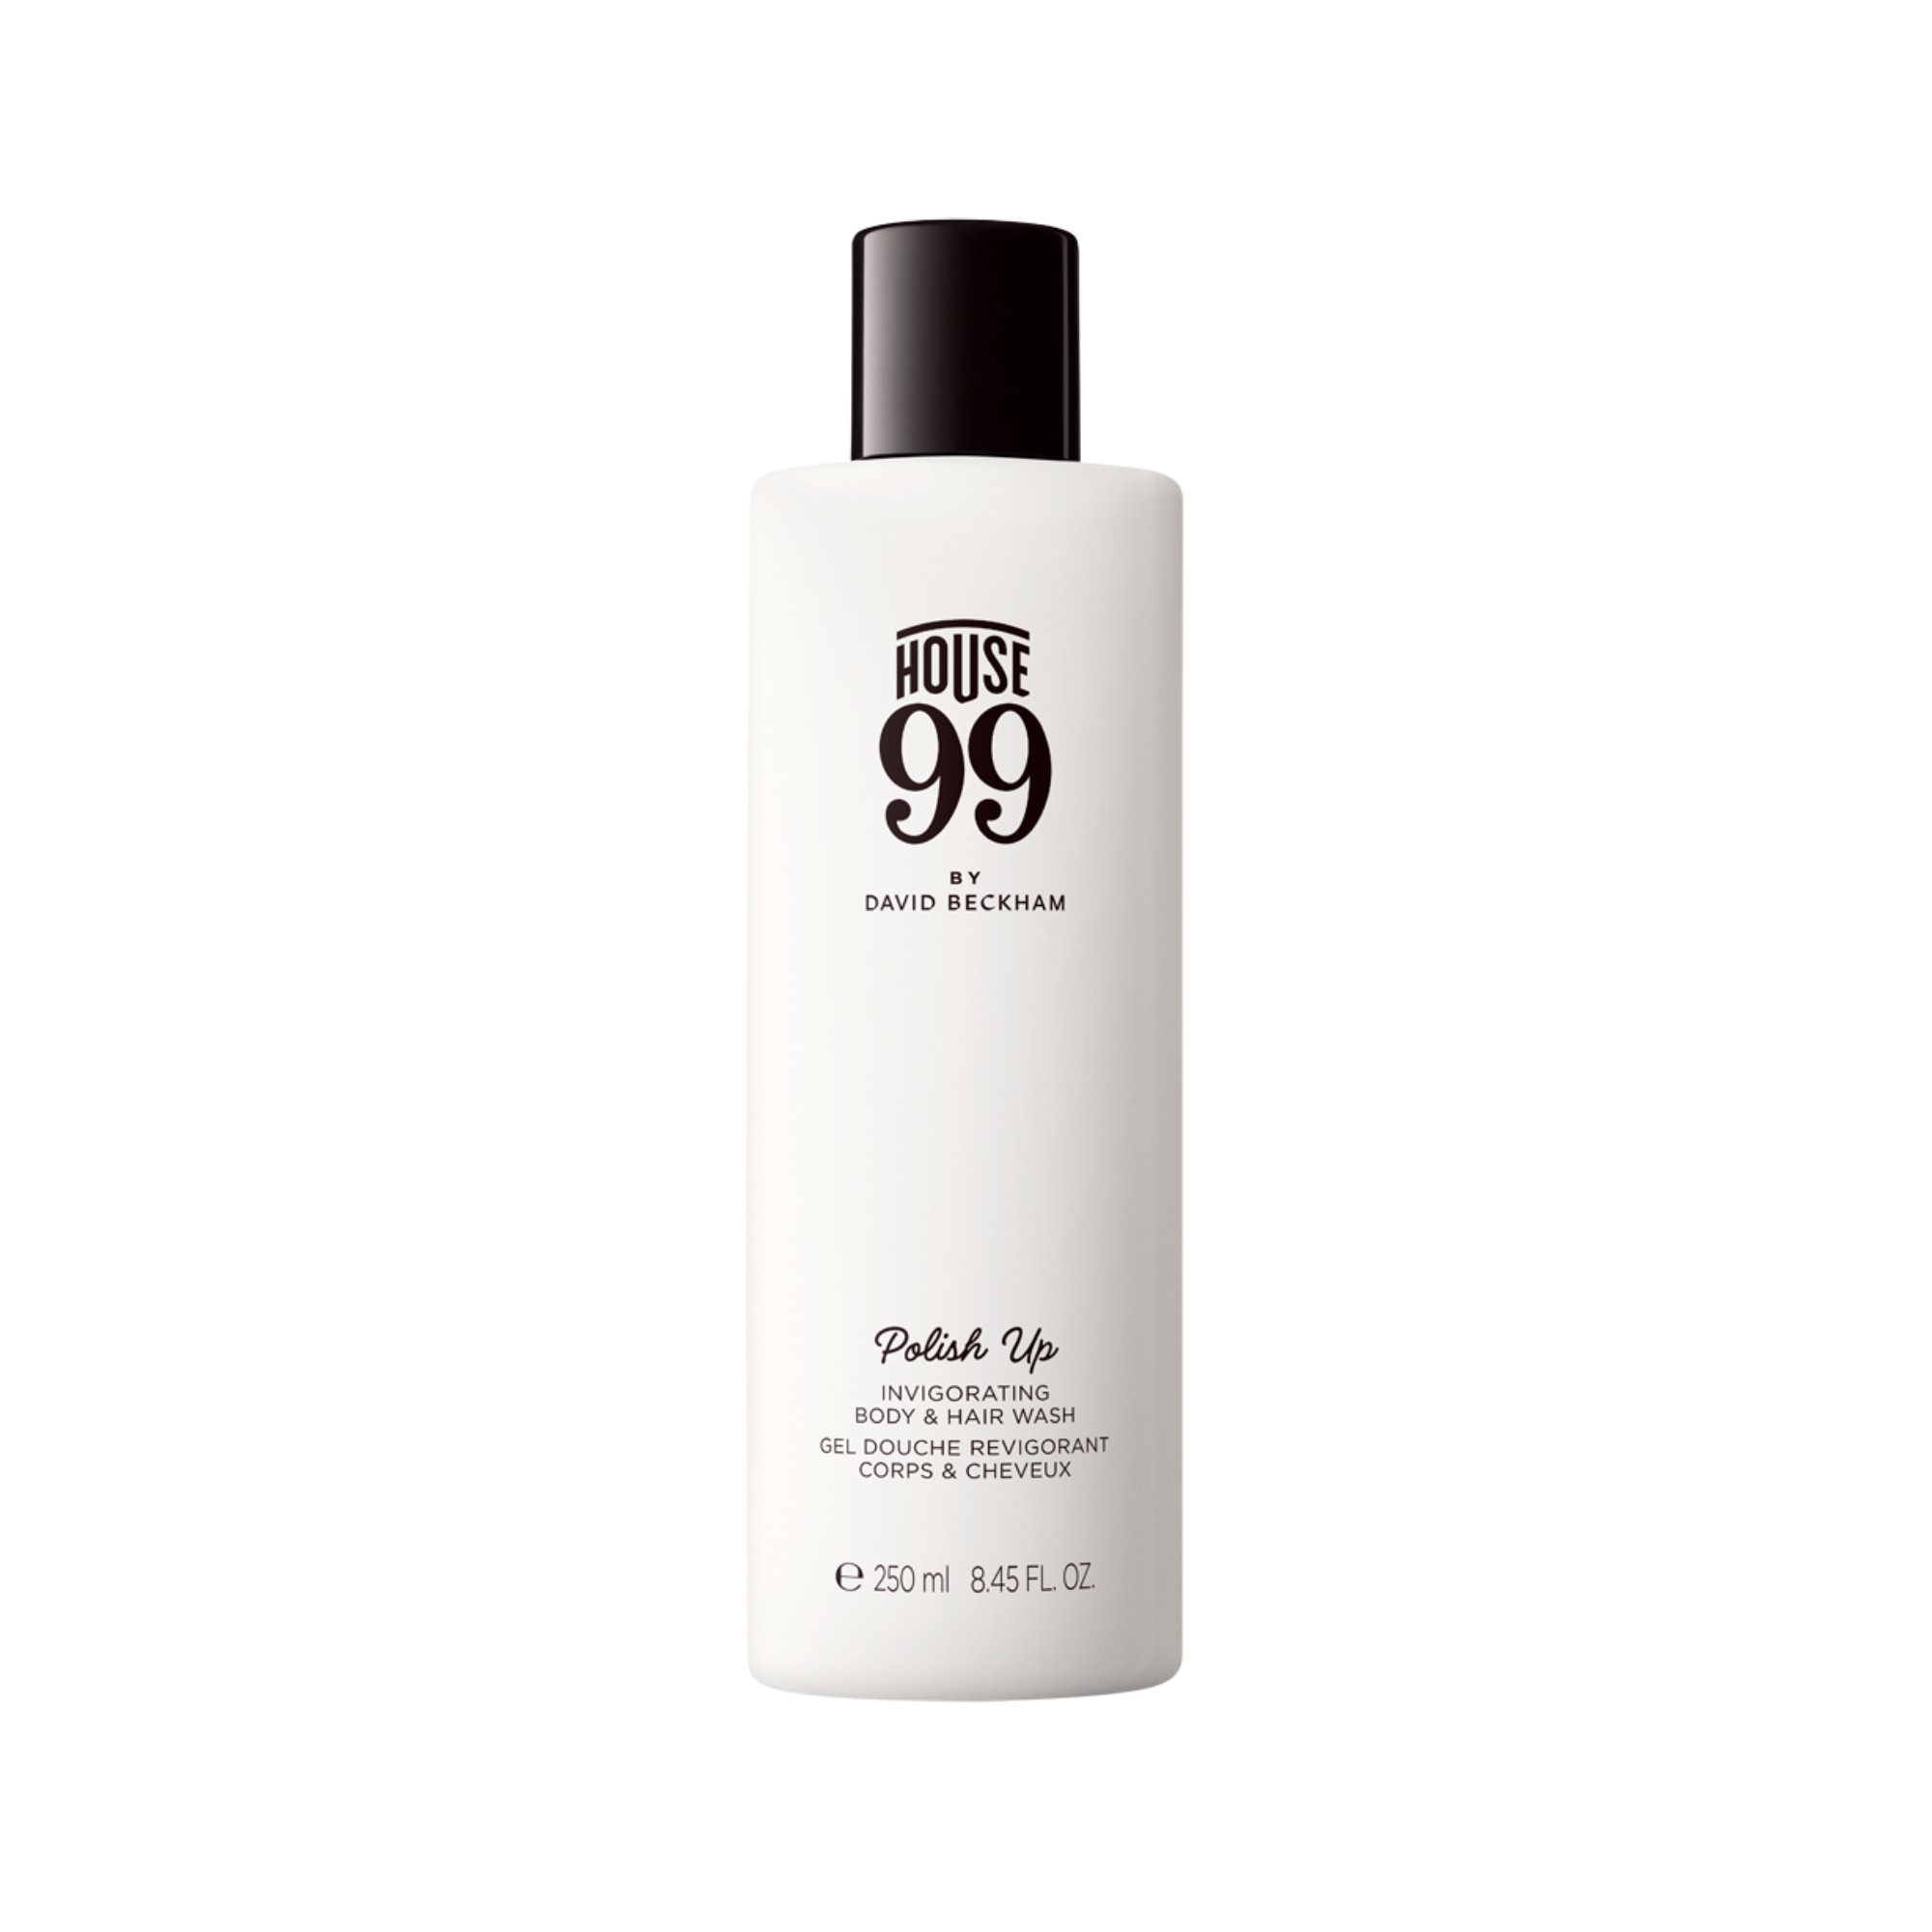 Polish Up Body & Hair Wash 250 ml